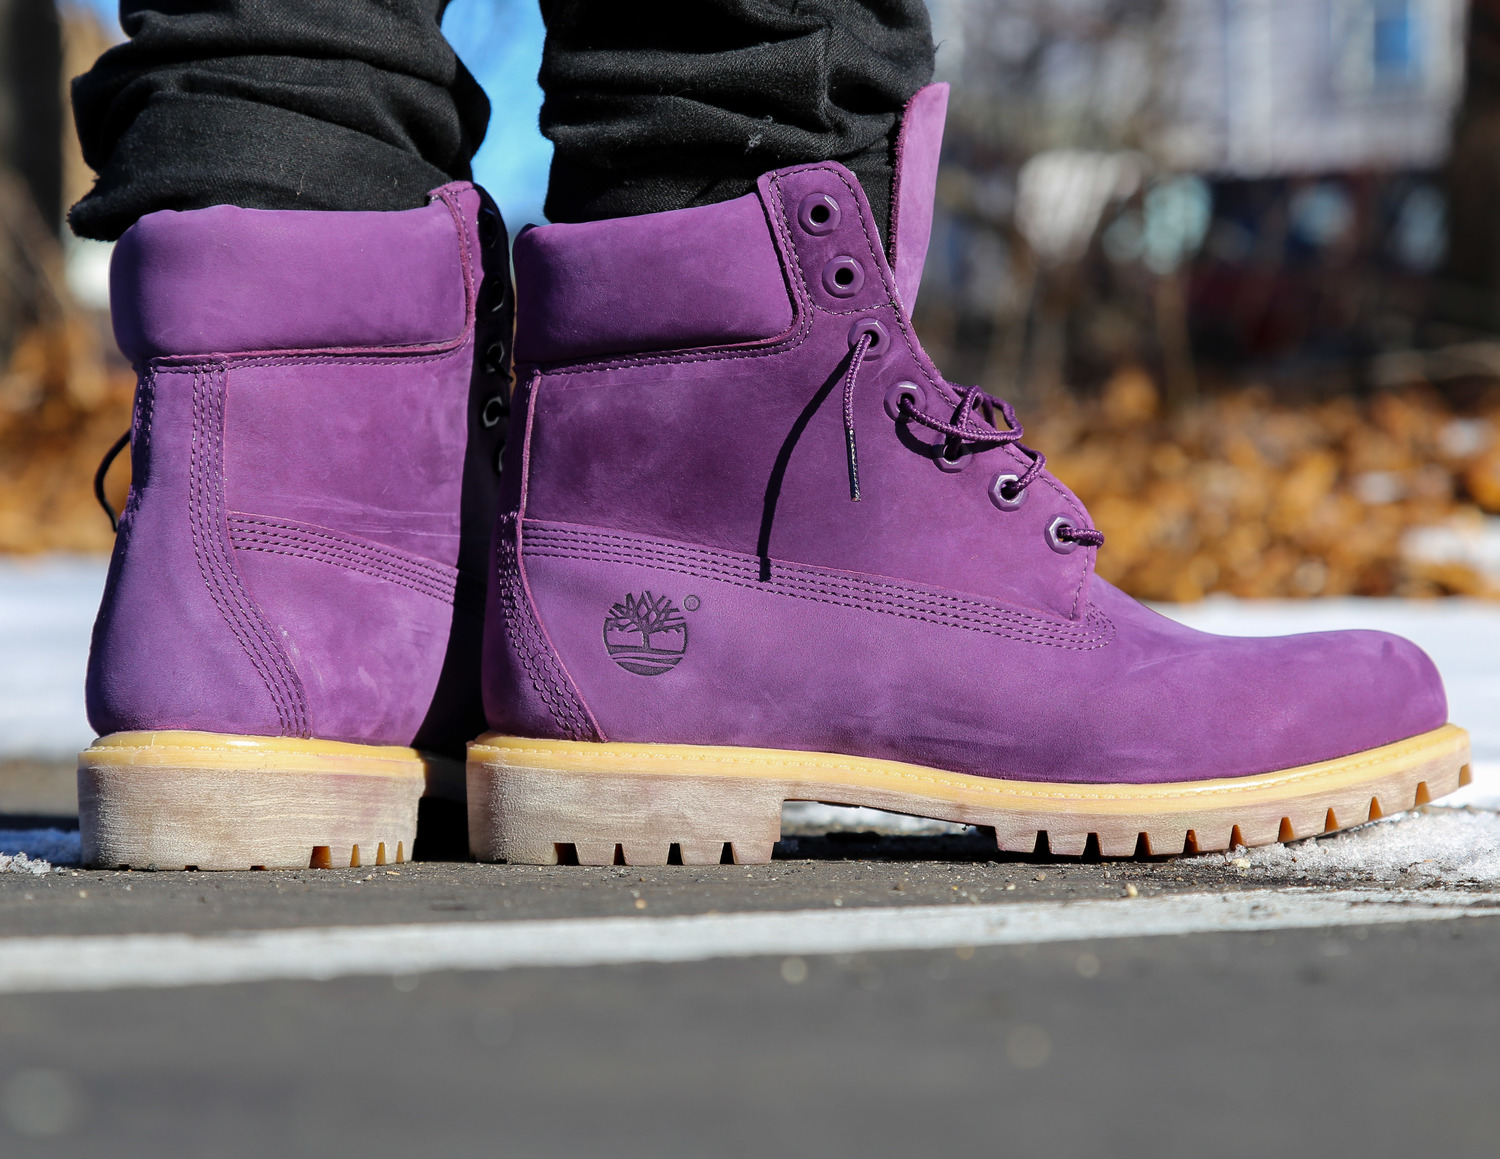 016bf3ec231e RuVilla-Timberland-Purple-Diamond-Blog (3 of 6).jpg